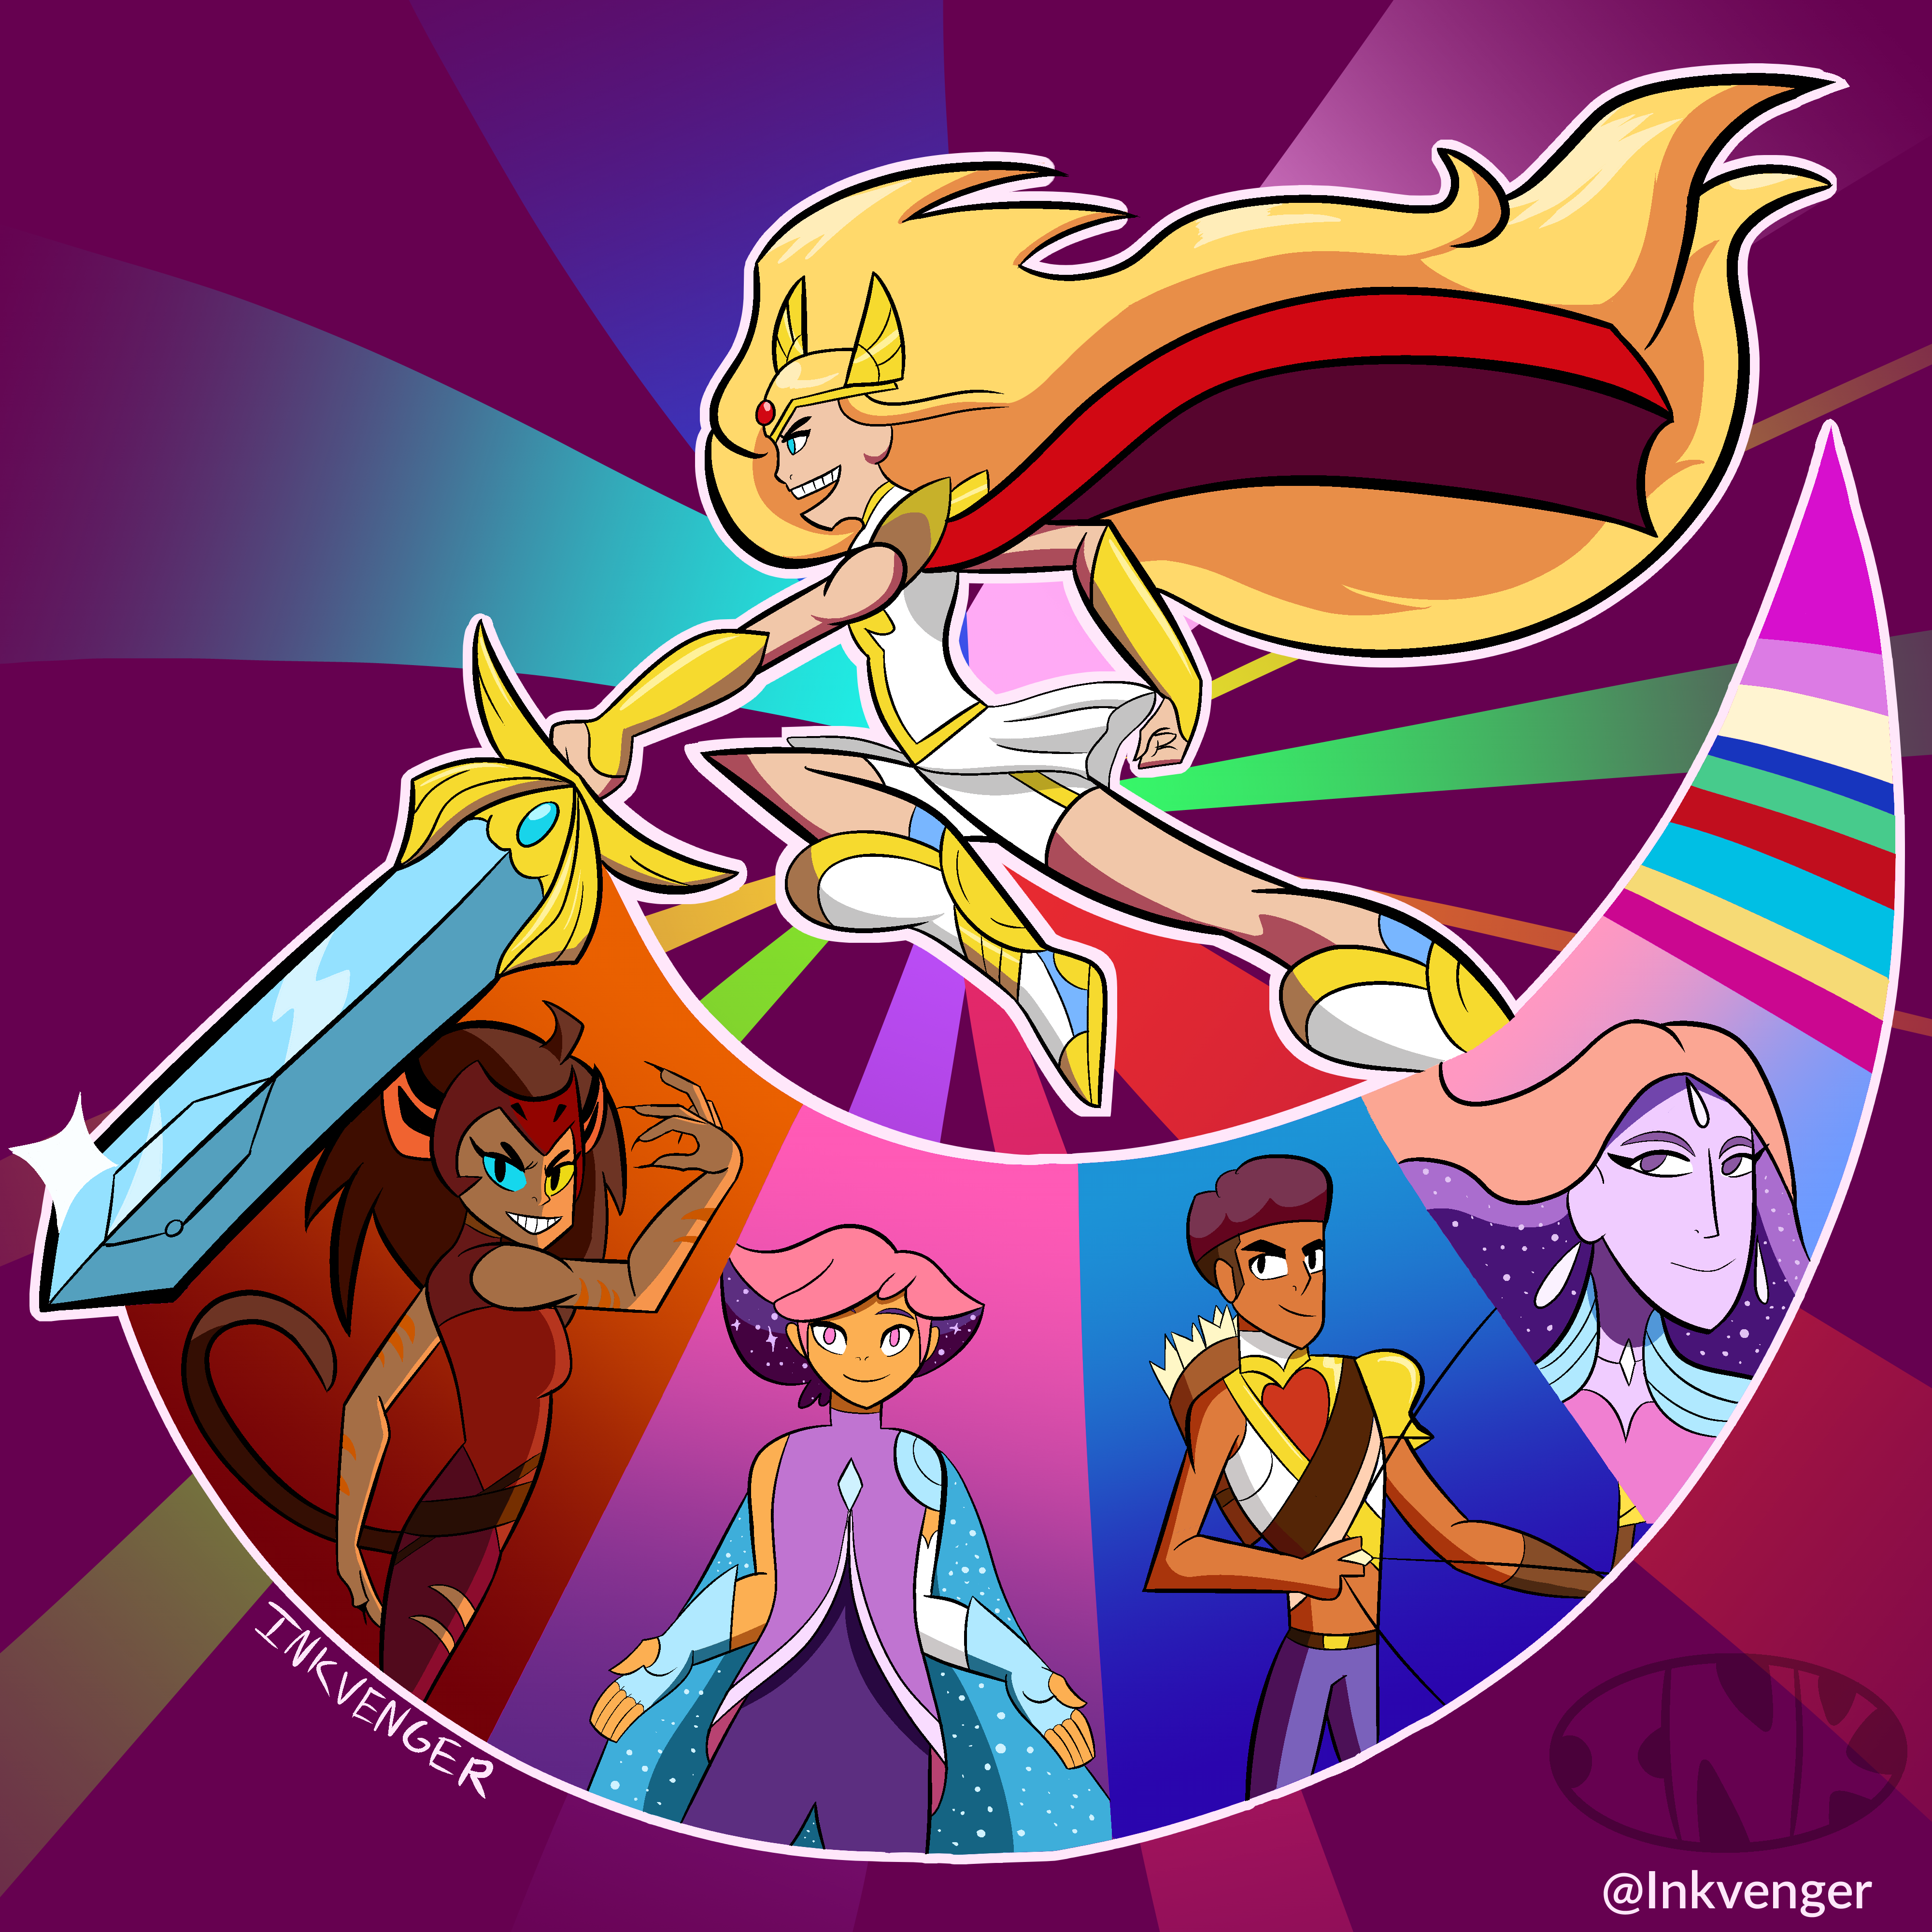 She-Ra and the Princesses of Power Season 4 Exclusively on